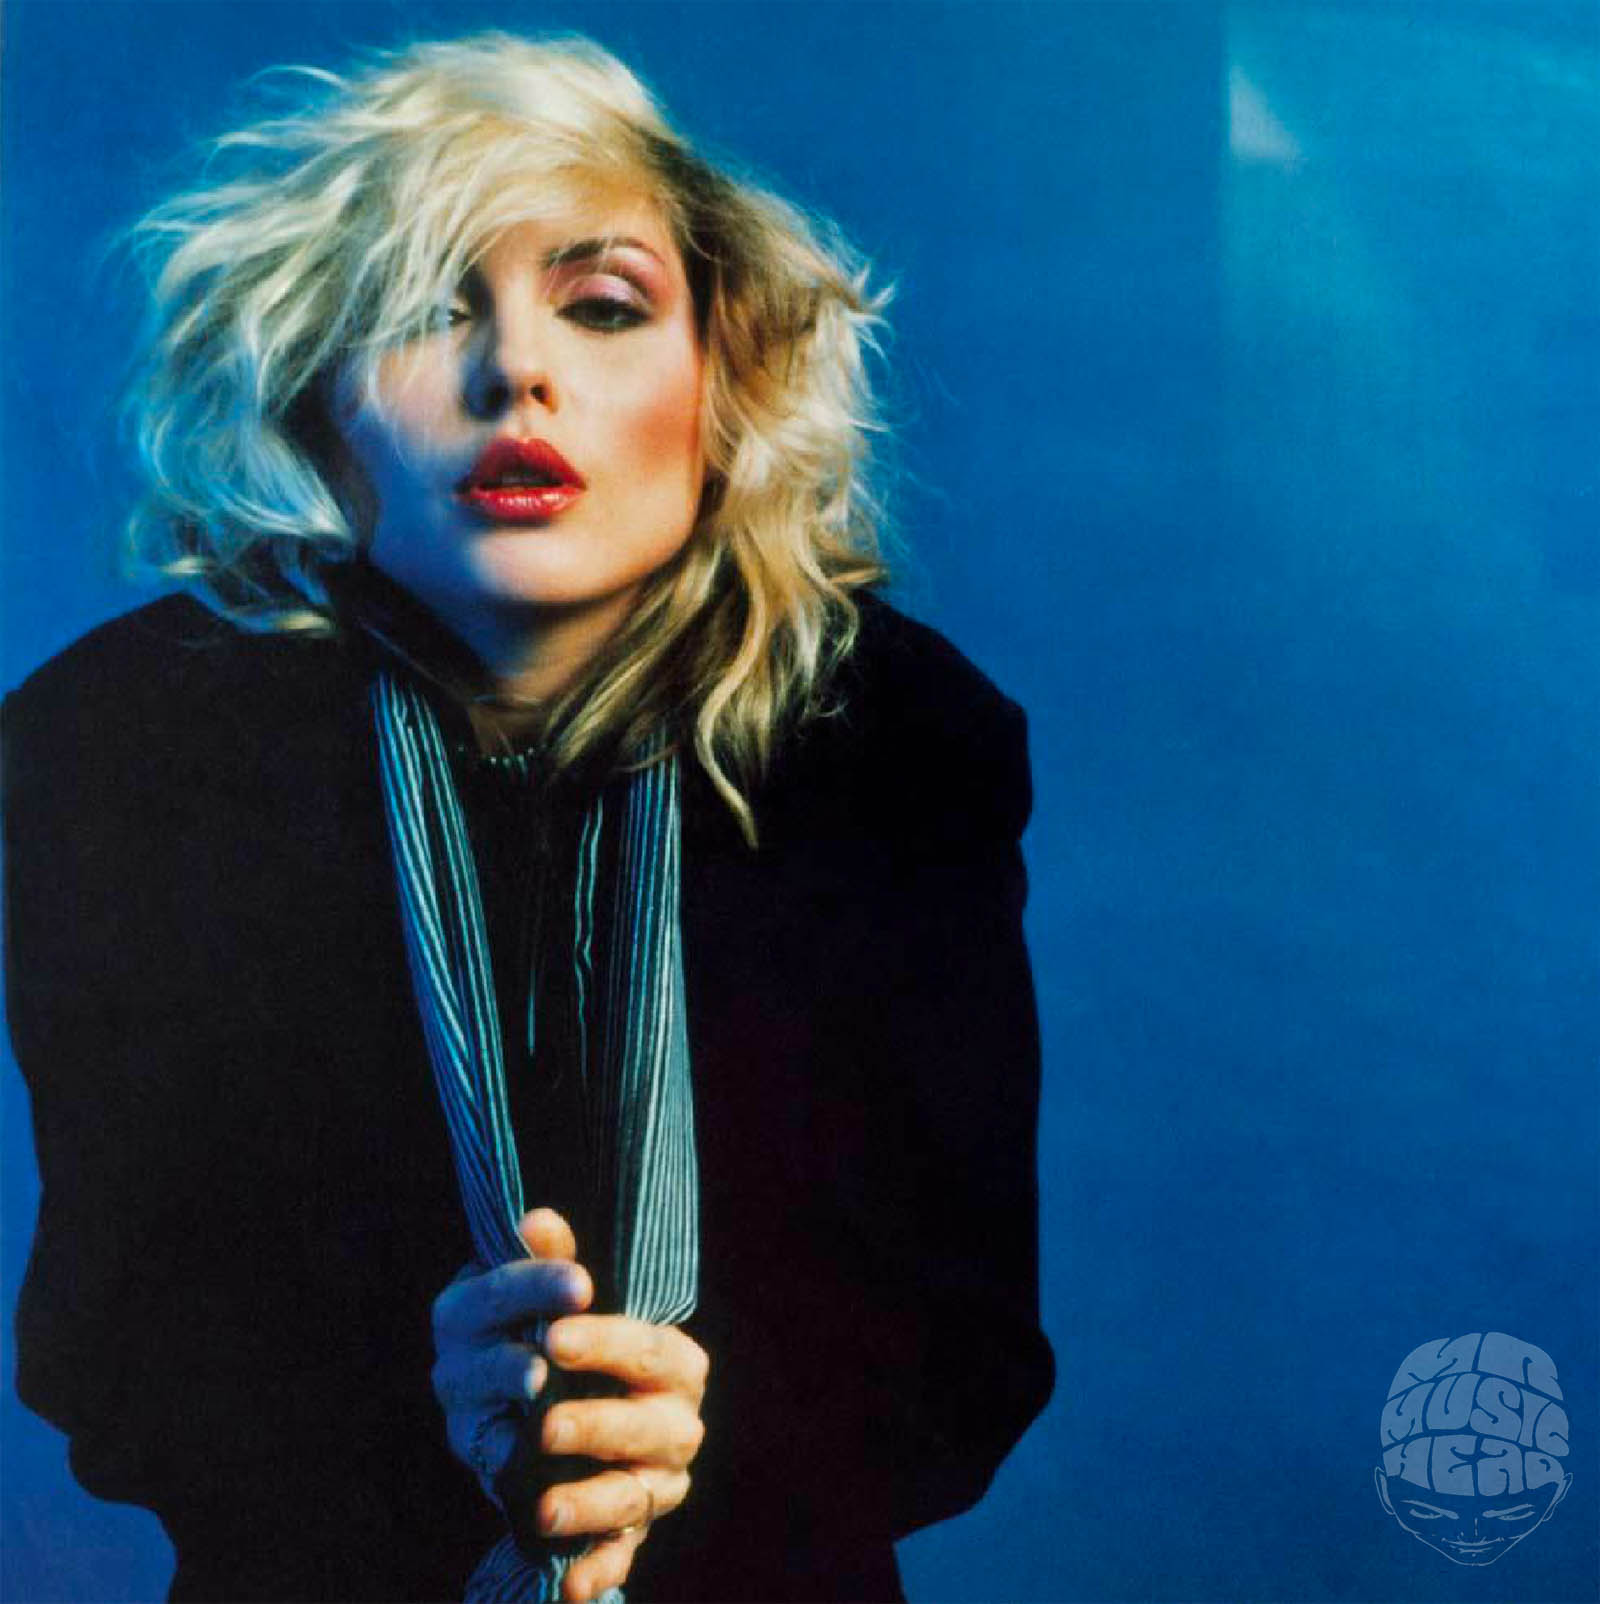 mick rock_debbie harry.jpg